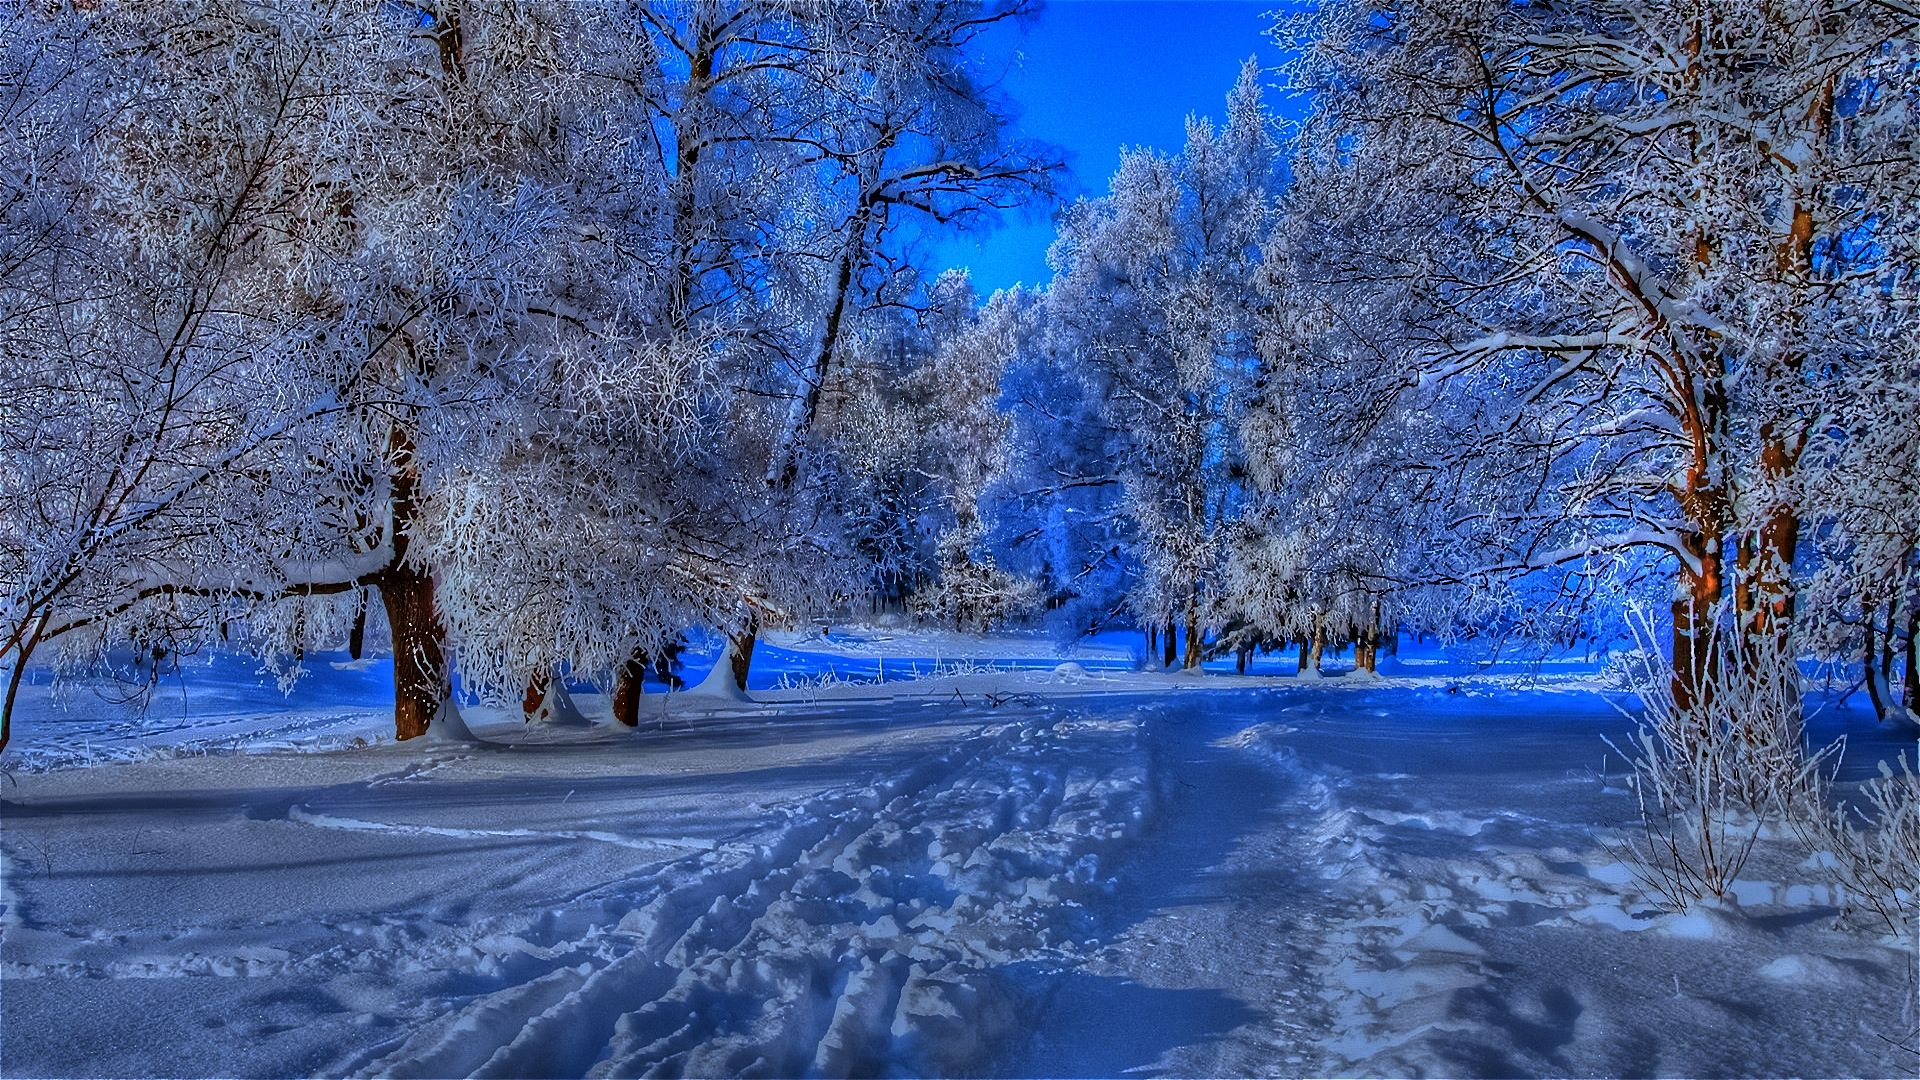 winter nature best wallpapers ever - photo #36